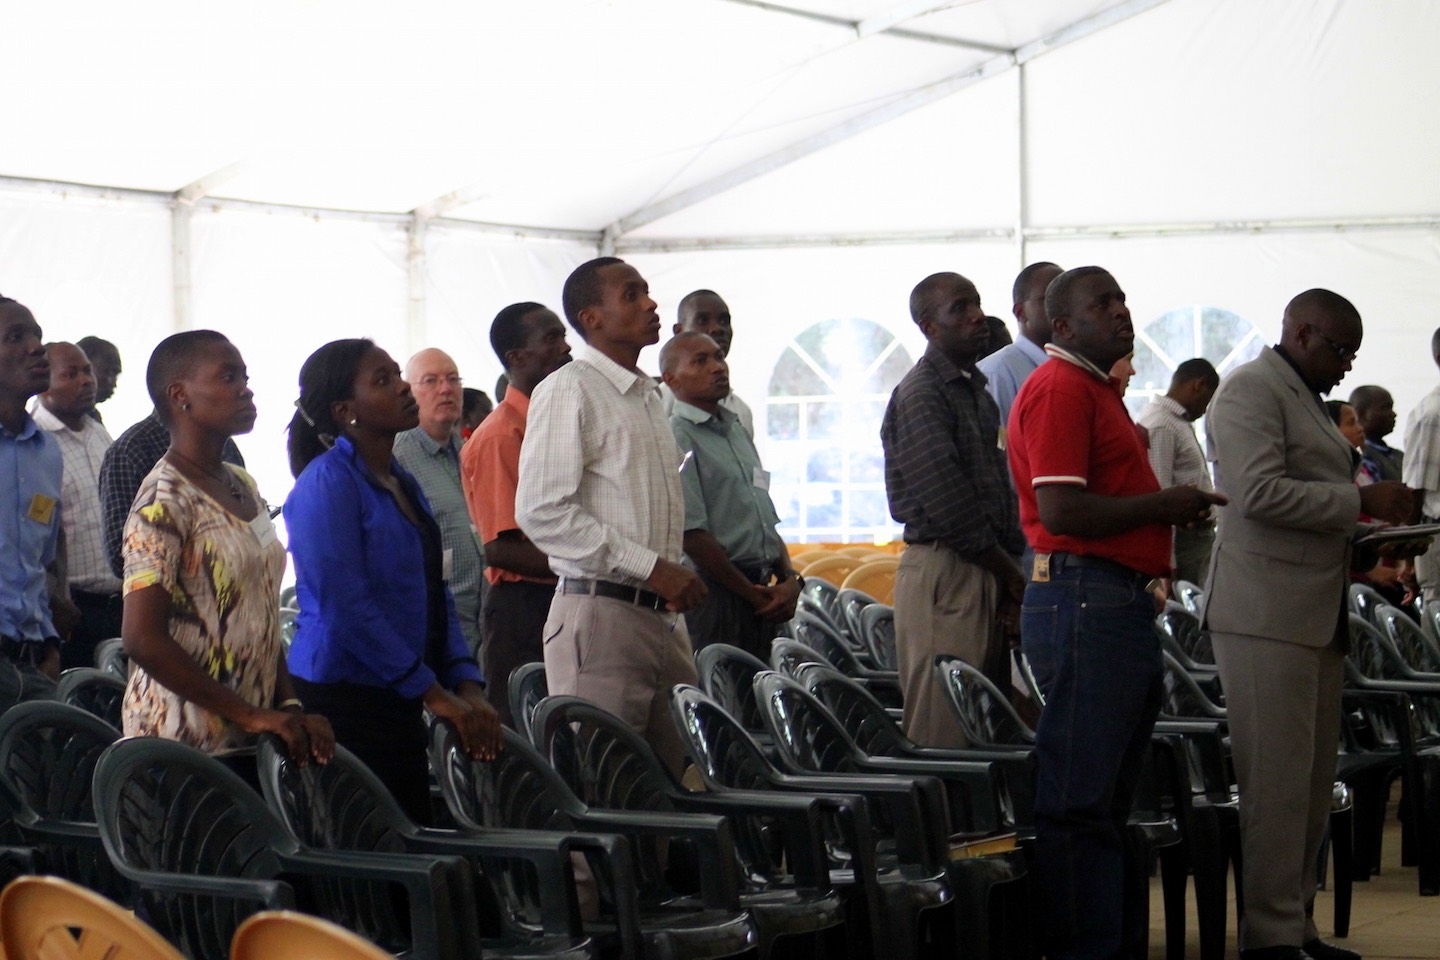 Help send copies of A Conservative Christian Declaration to Kenya